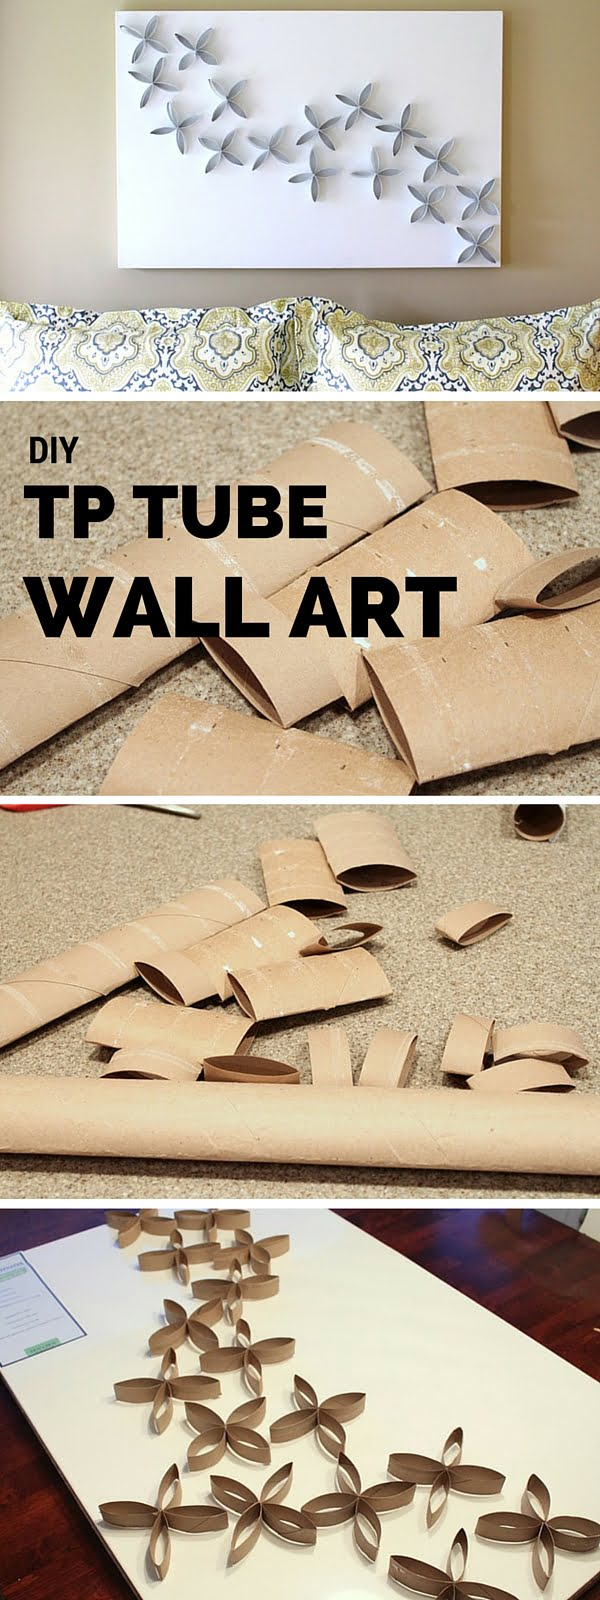 Check out the tutorial:  TP Tube Wall Art